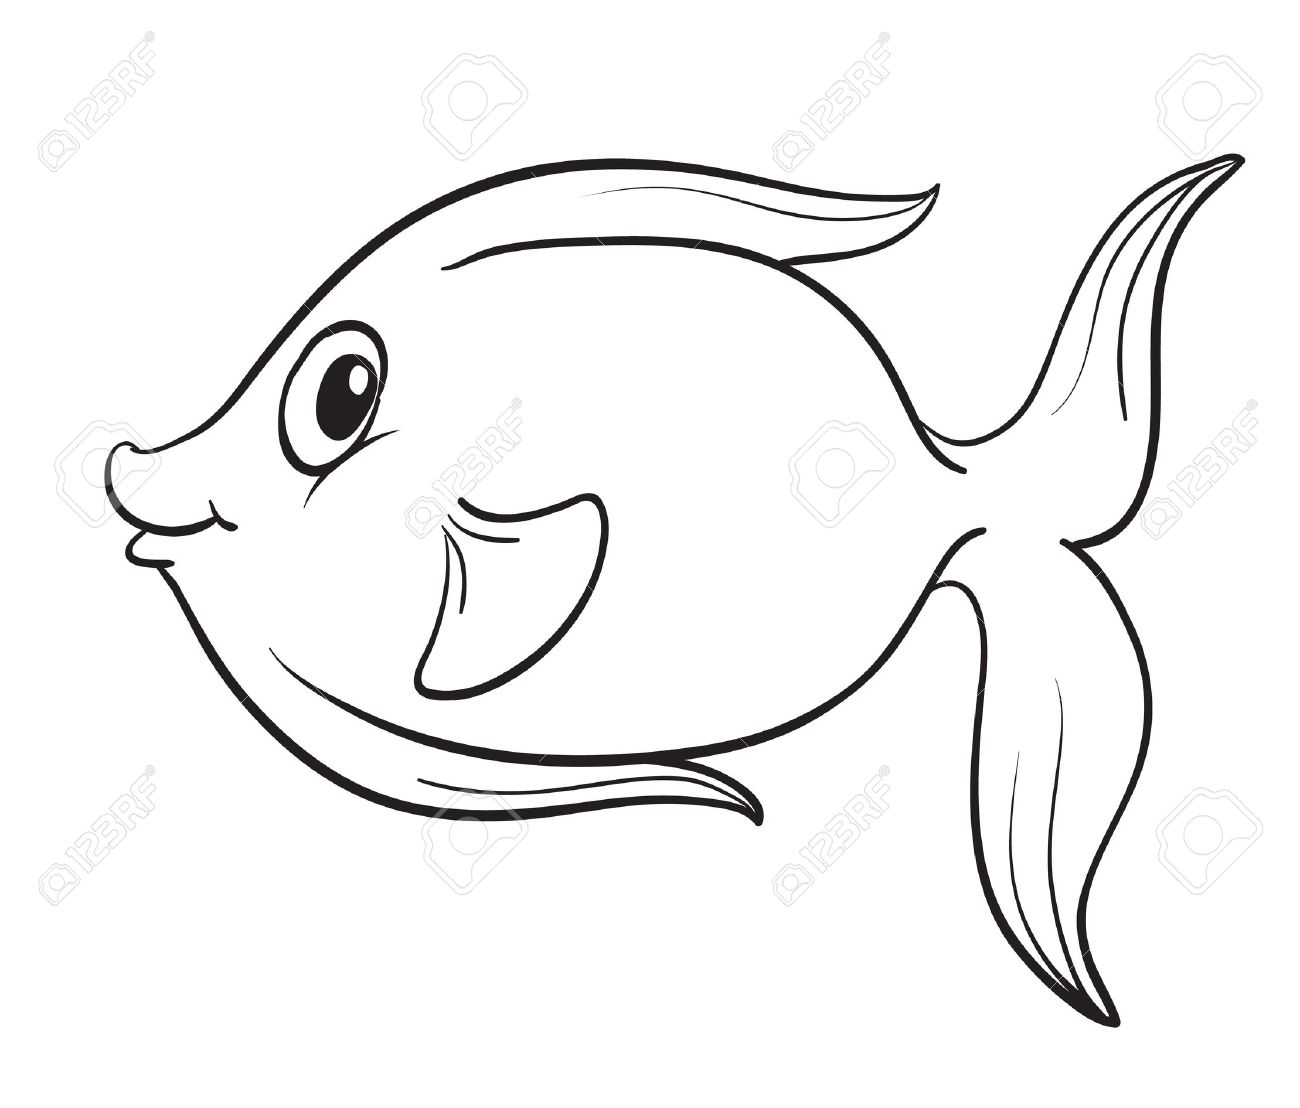 1300x1108 Detailed Illustration Of A Fish Outline Royalty Free Cliparts